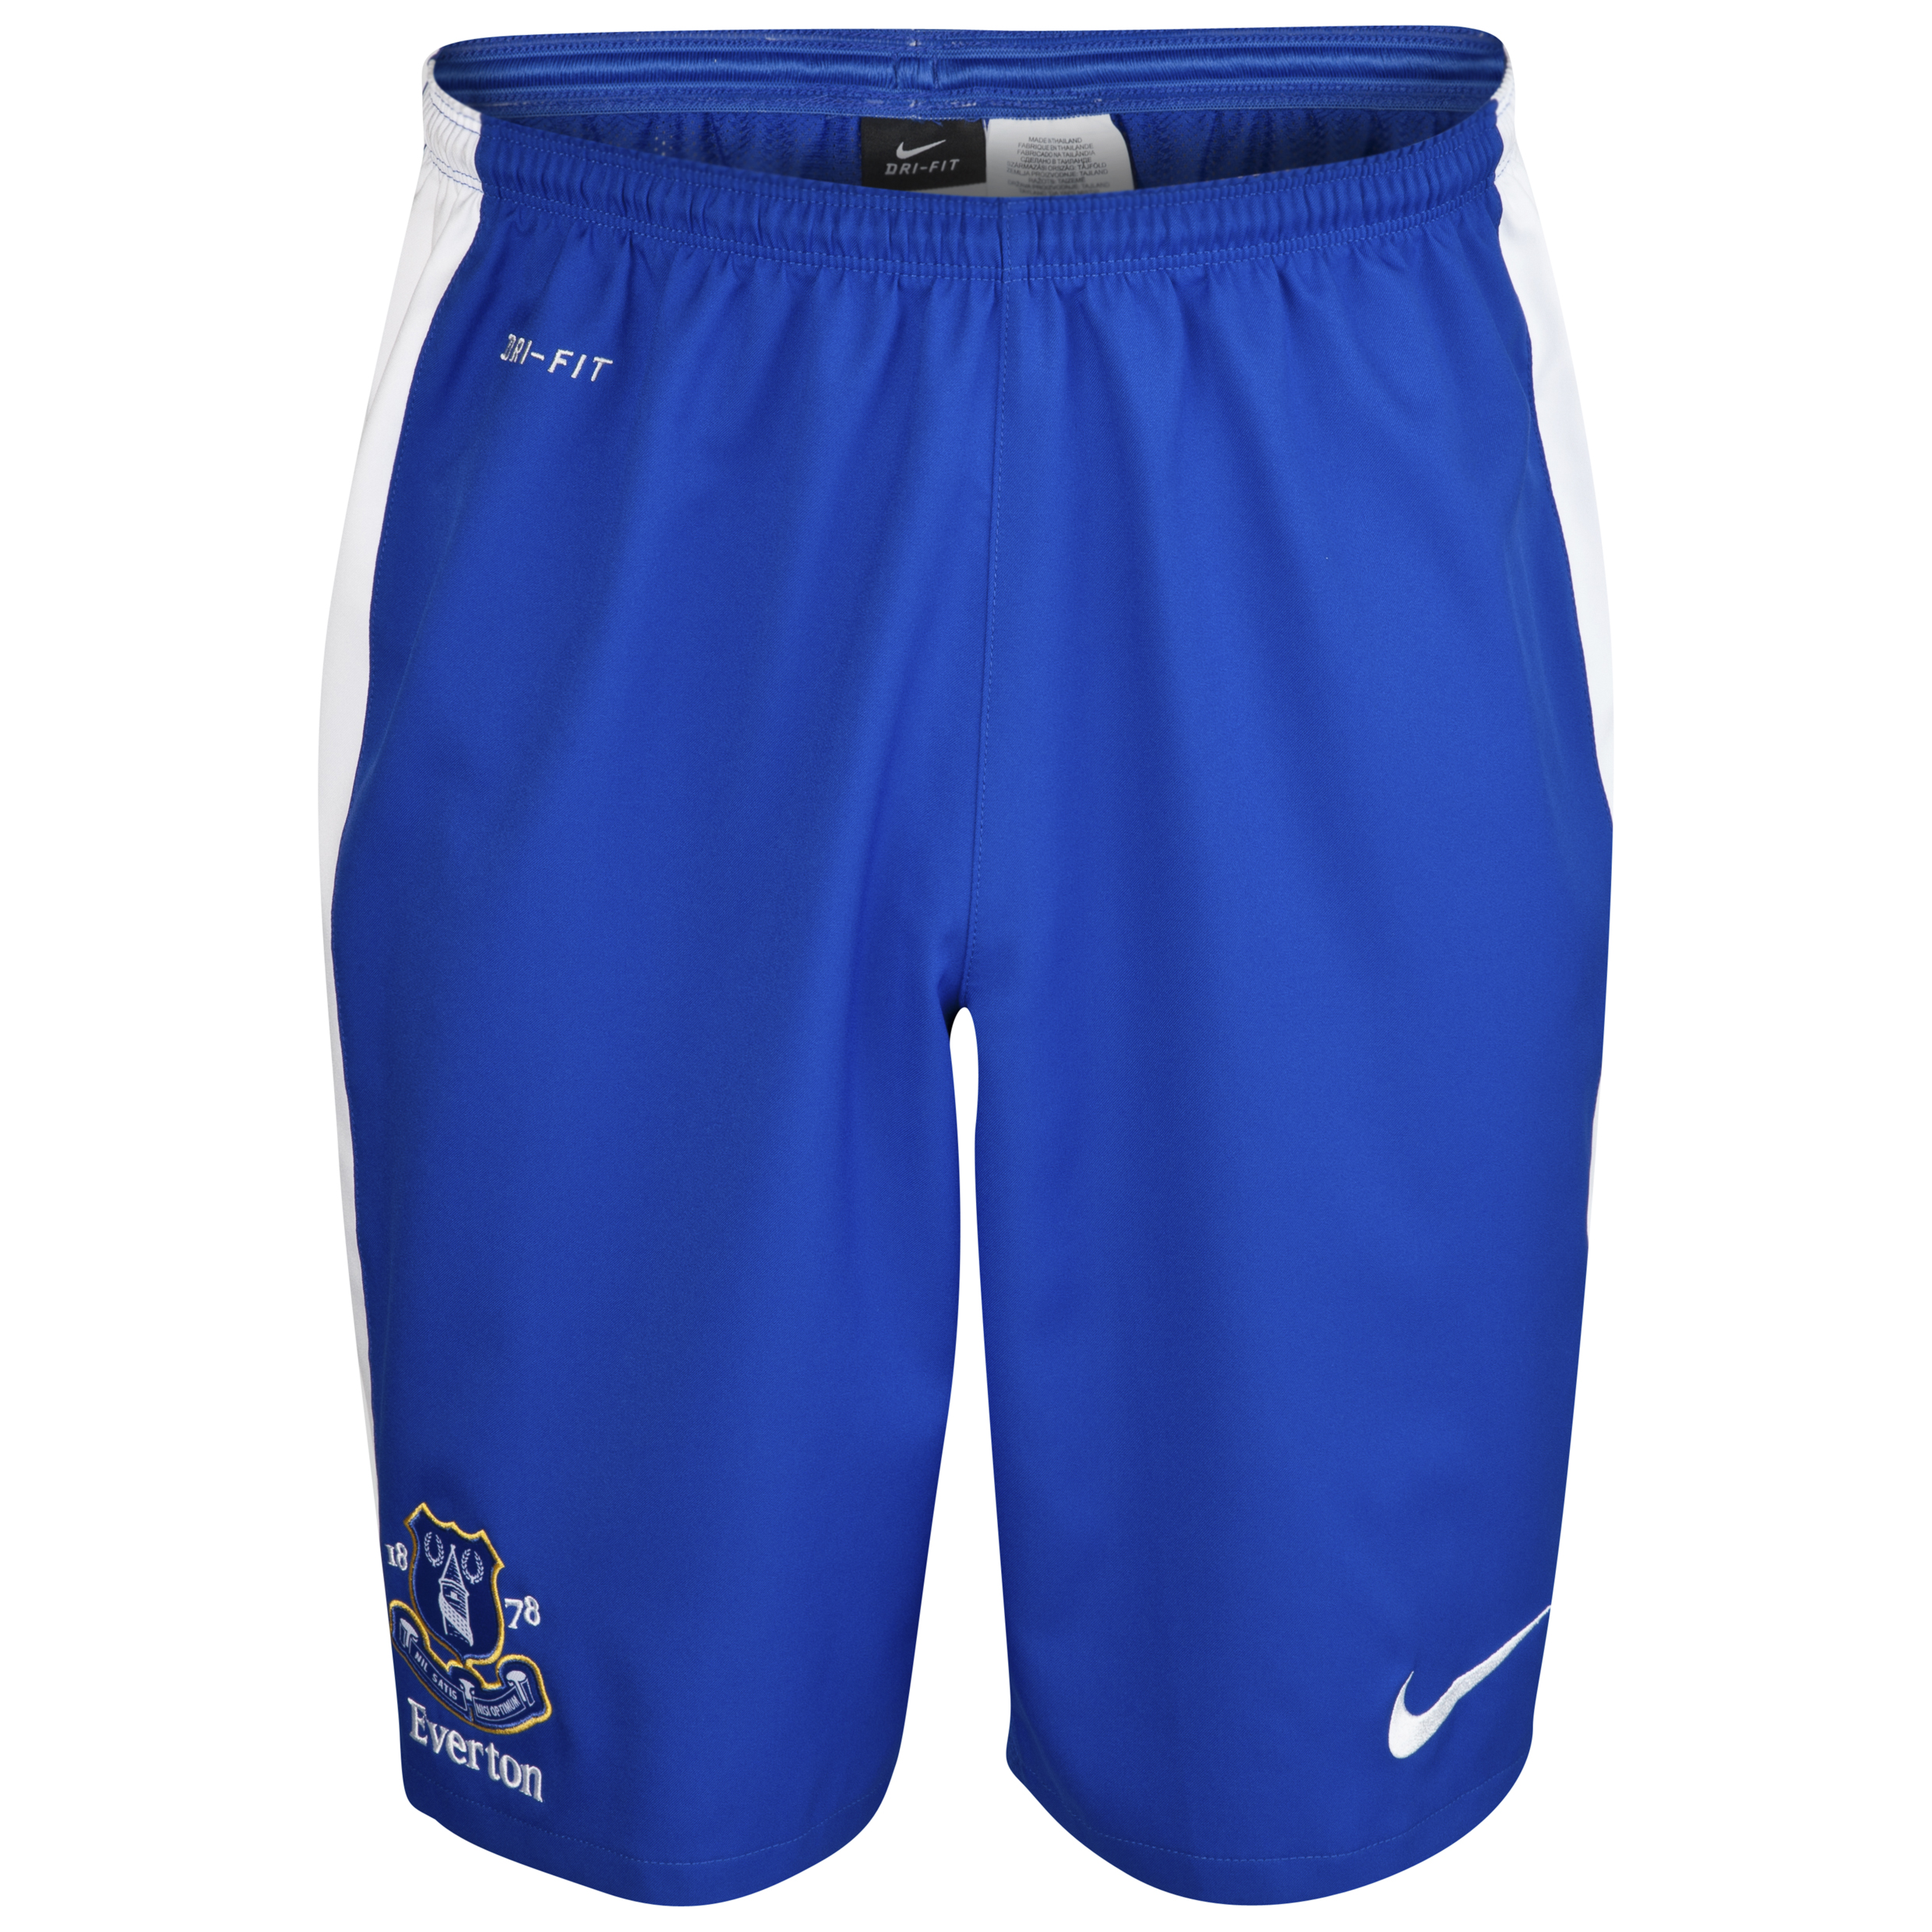 Everton Home Change/3rd Short 2012/13